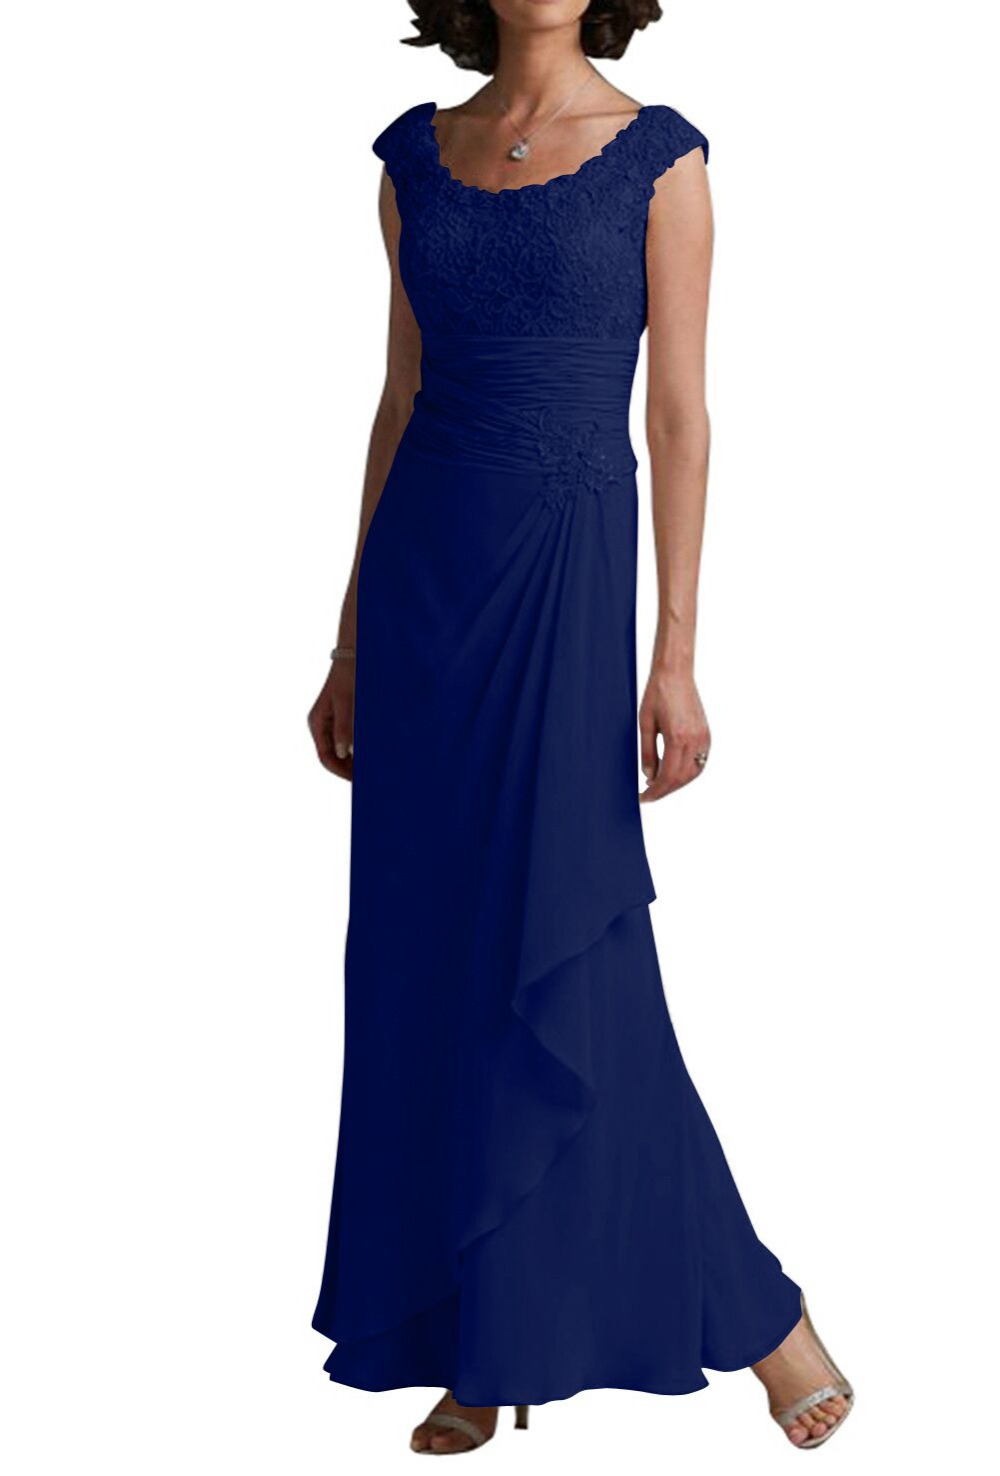 Cheap Royal Blue Cap And Gown, find Royal Blue Cap And Gown deals on ...